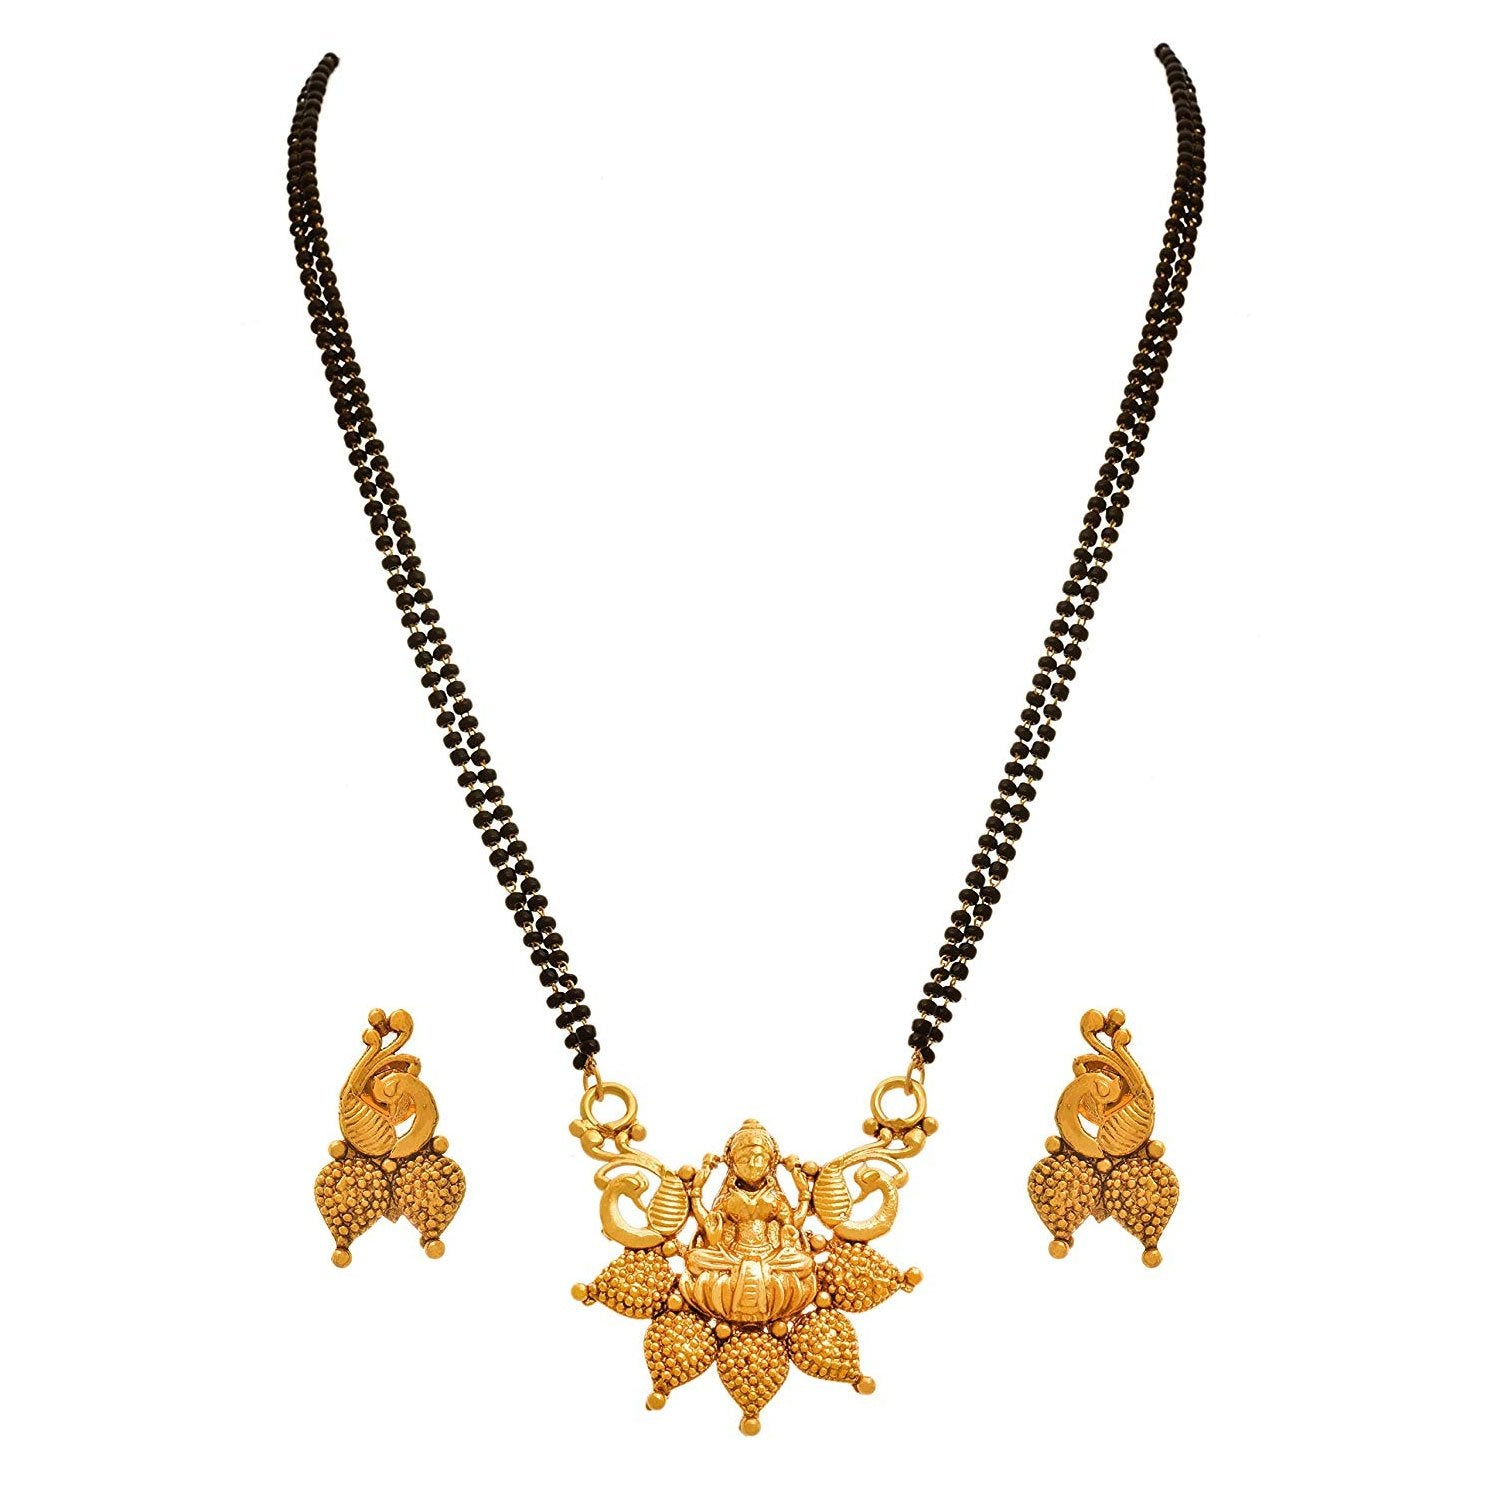 JFL - Traditional Ethnic One Gram Gold Plated Temple Goddess Laxmi Designer Mangalsutra Jewellery Mangalsutra Set with Earring for Women.